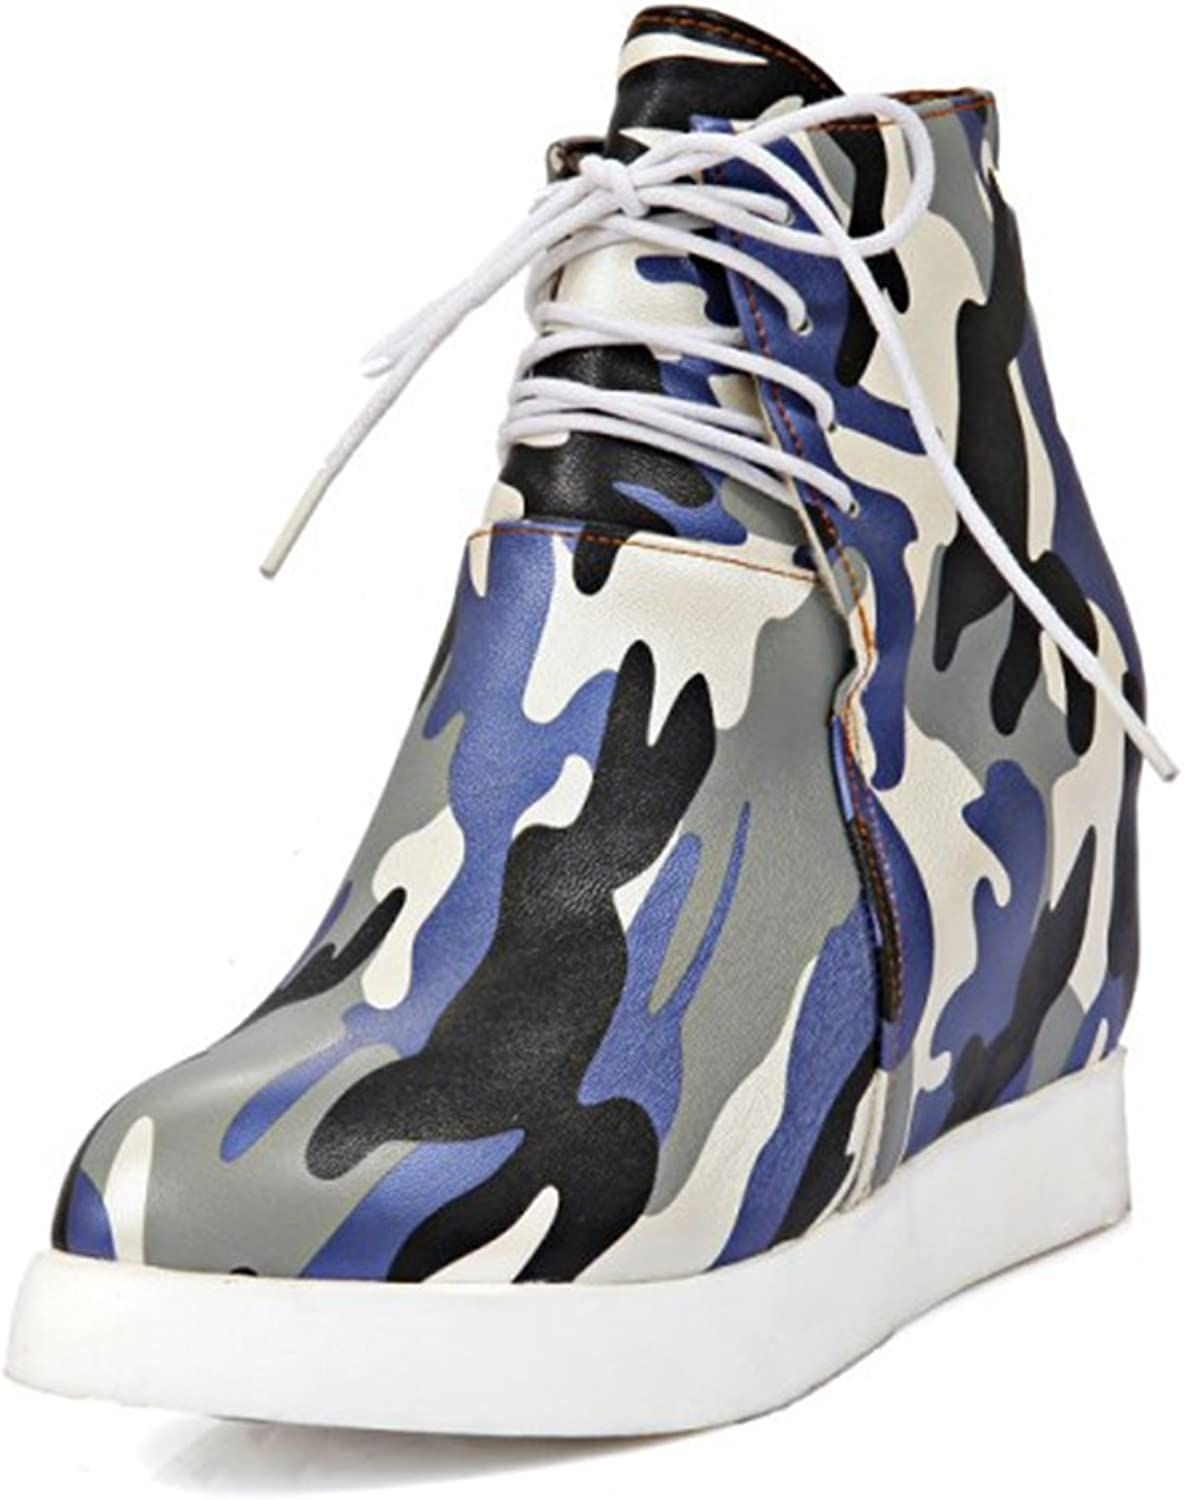 IDIFU Women's Stylish Camouflage Platform Wedge Lace Up Sneakers Boots with Hidden Heels